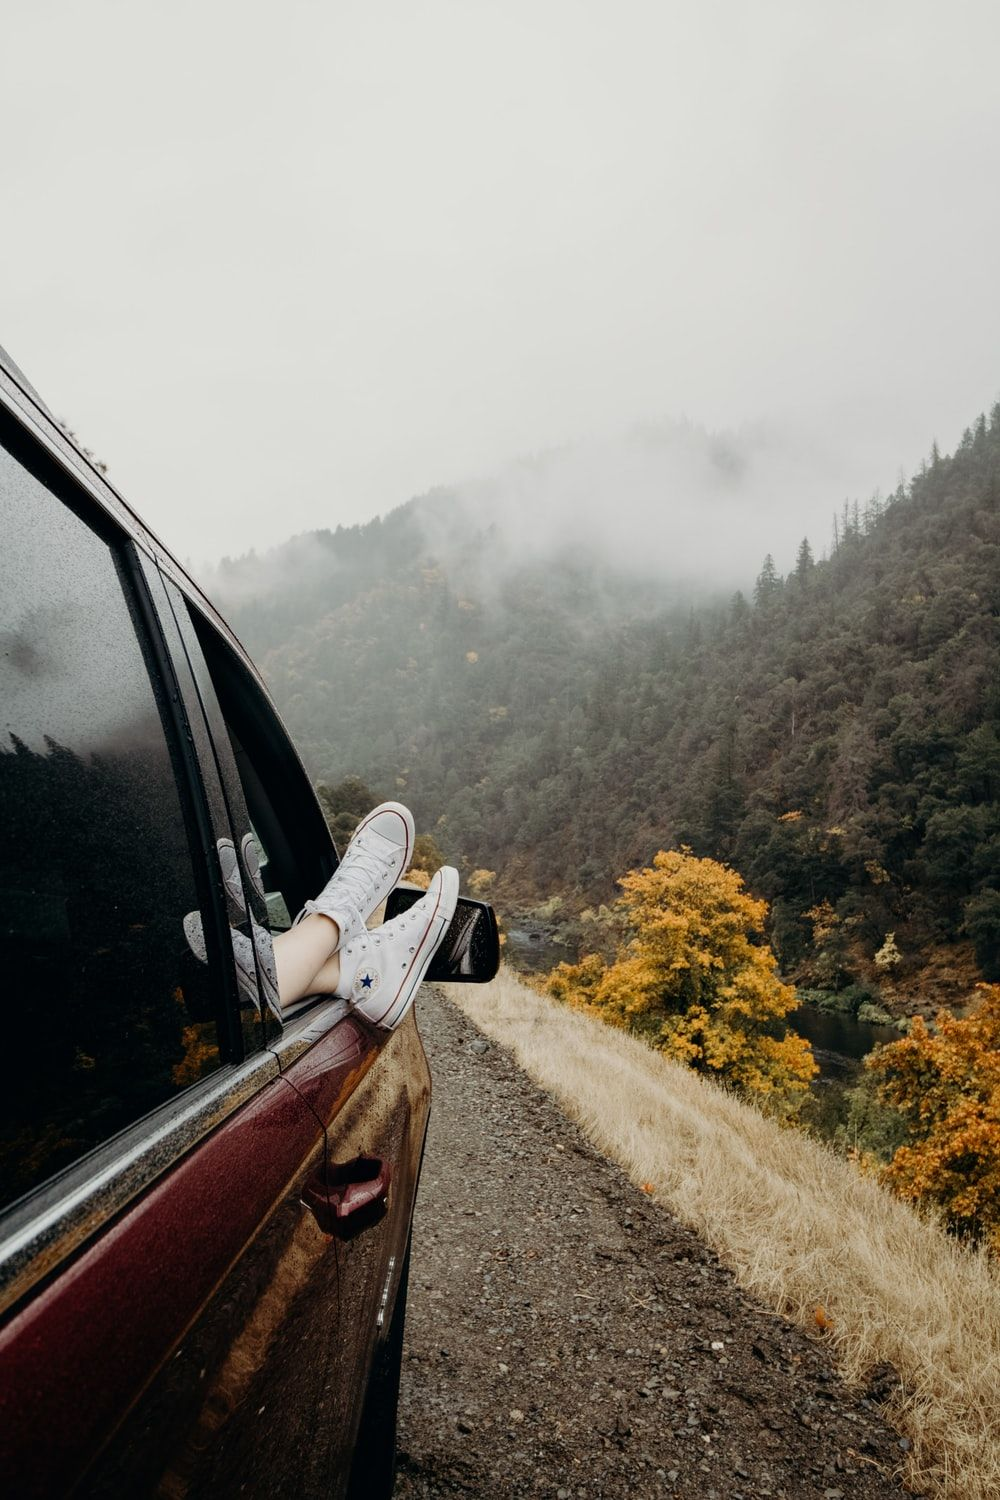 Road Trip Wallpapers Top Free Road Trip Backgrounds Wallpaperaccess